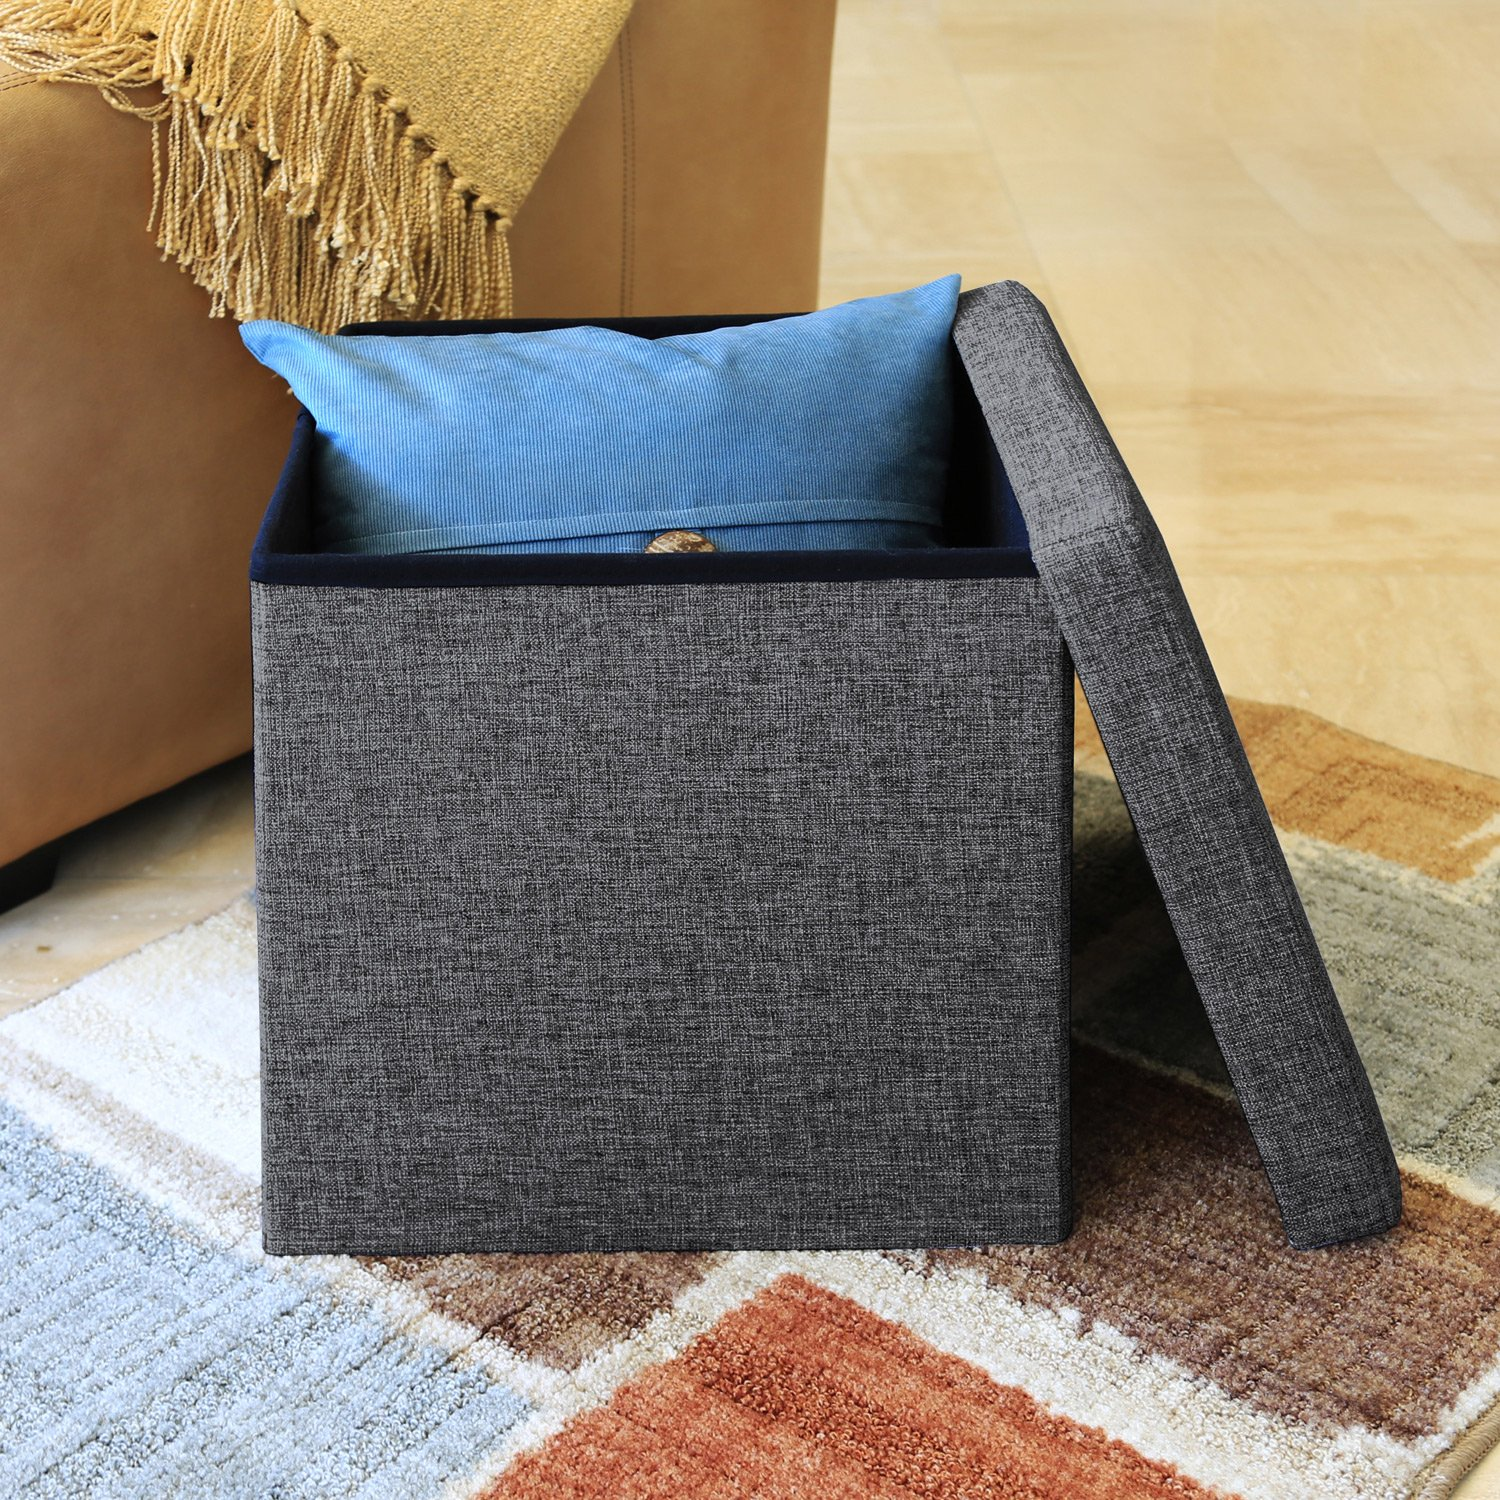 Seville Classics Foldable Storage Ottoman, Charcoal Gray